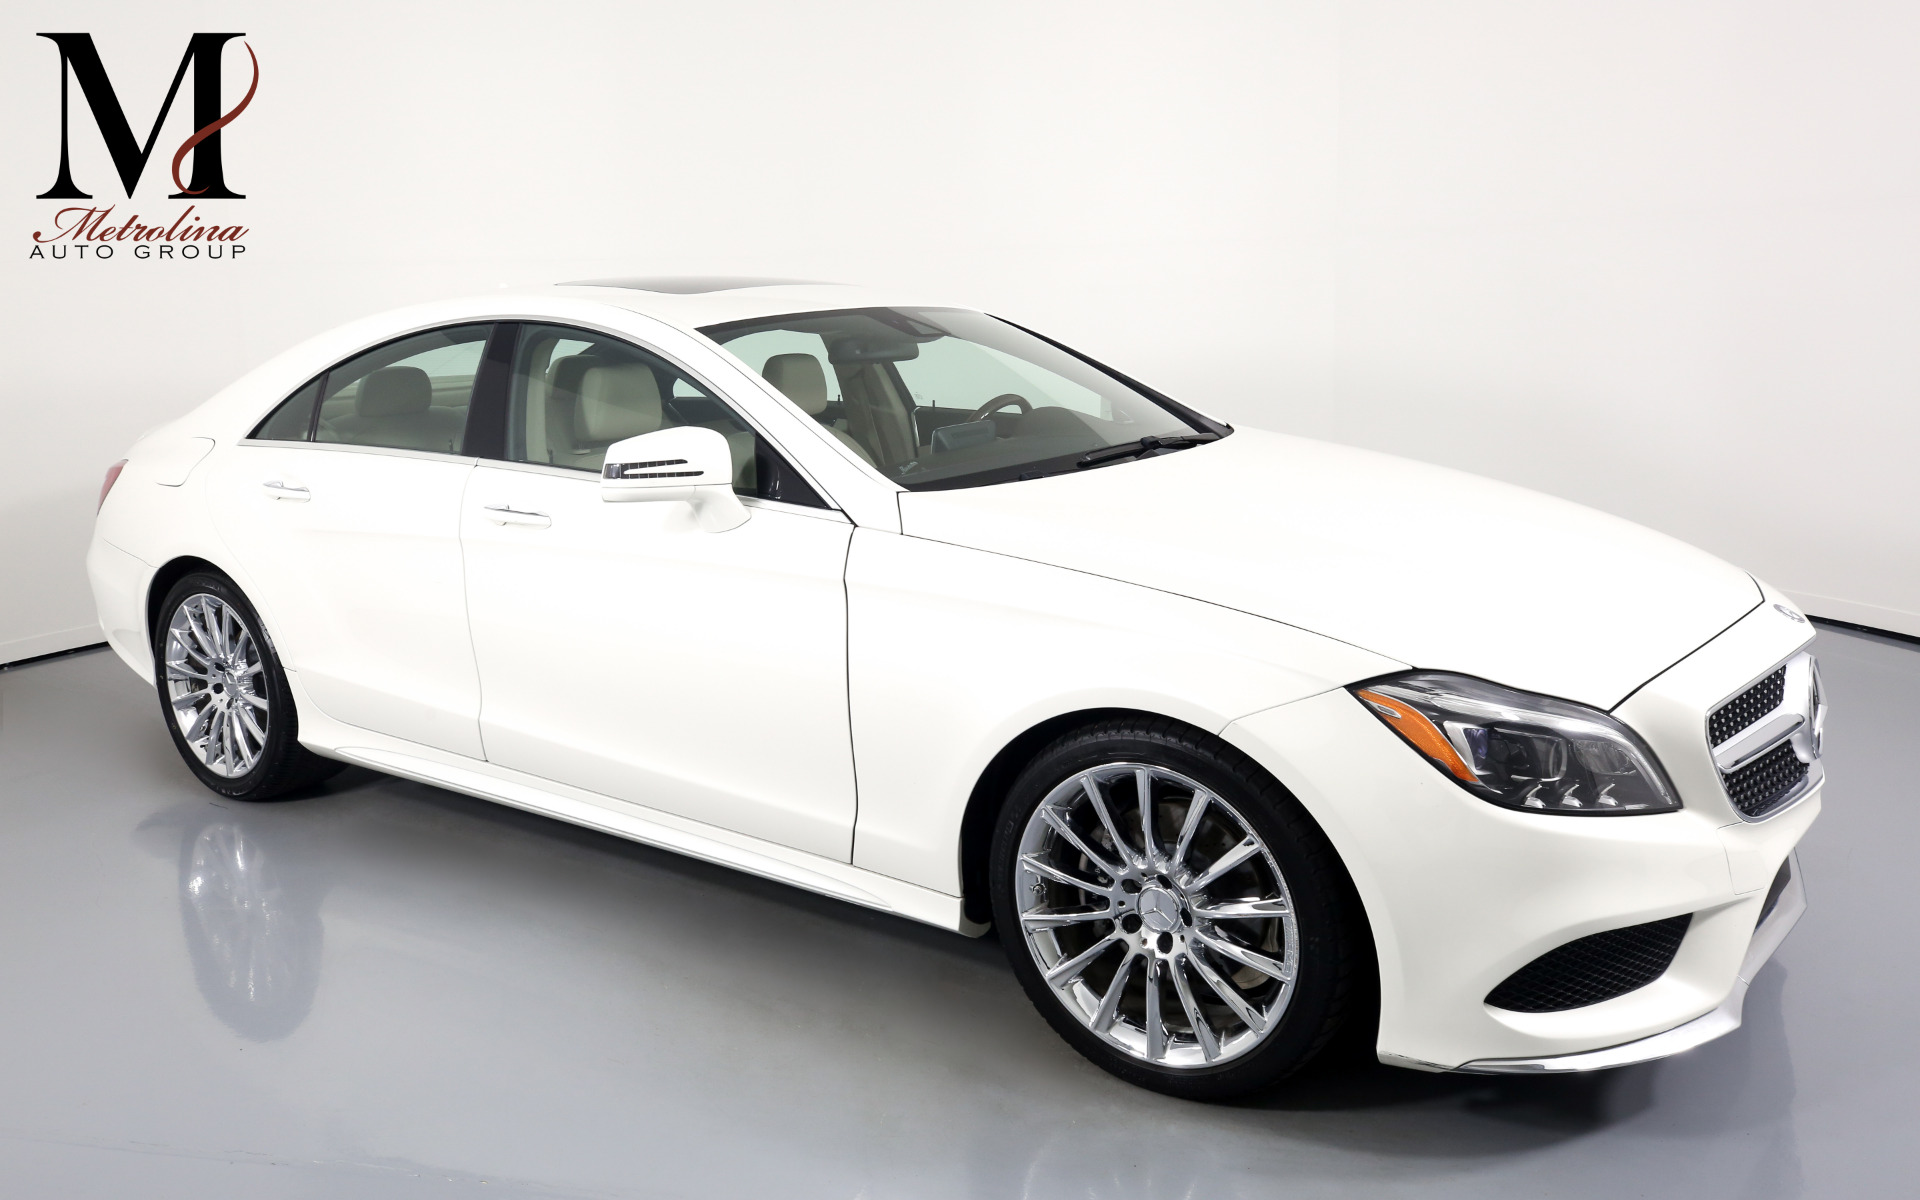 Used 2016 Mercedes-Benz CLS CLS 400 for sale $33,996 at Metrolina Auto Group in Charlotte NC 28217 - 1